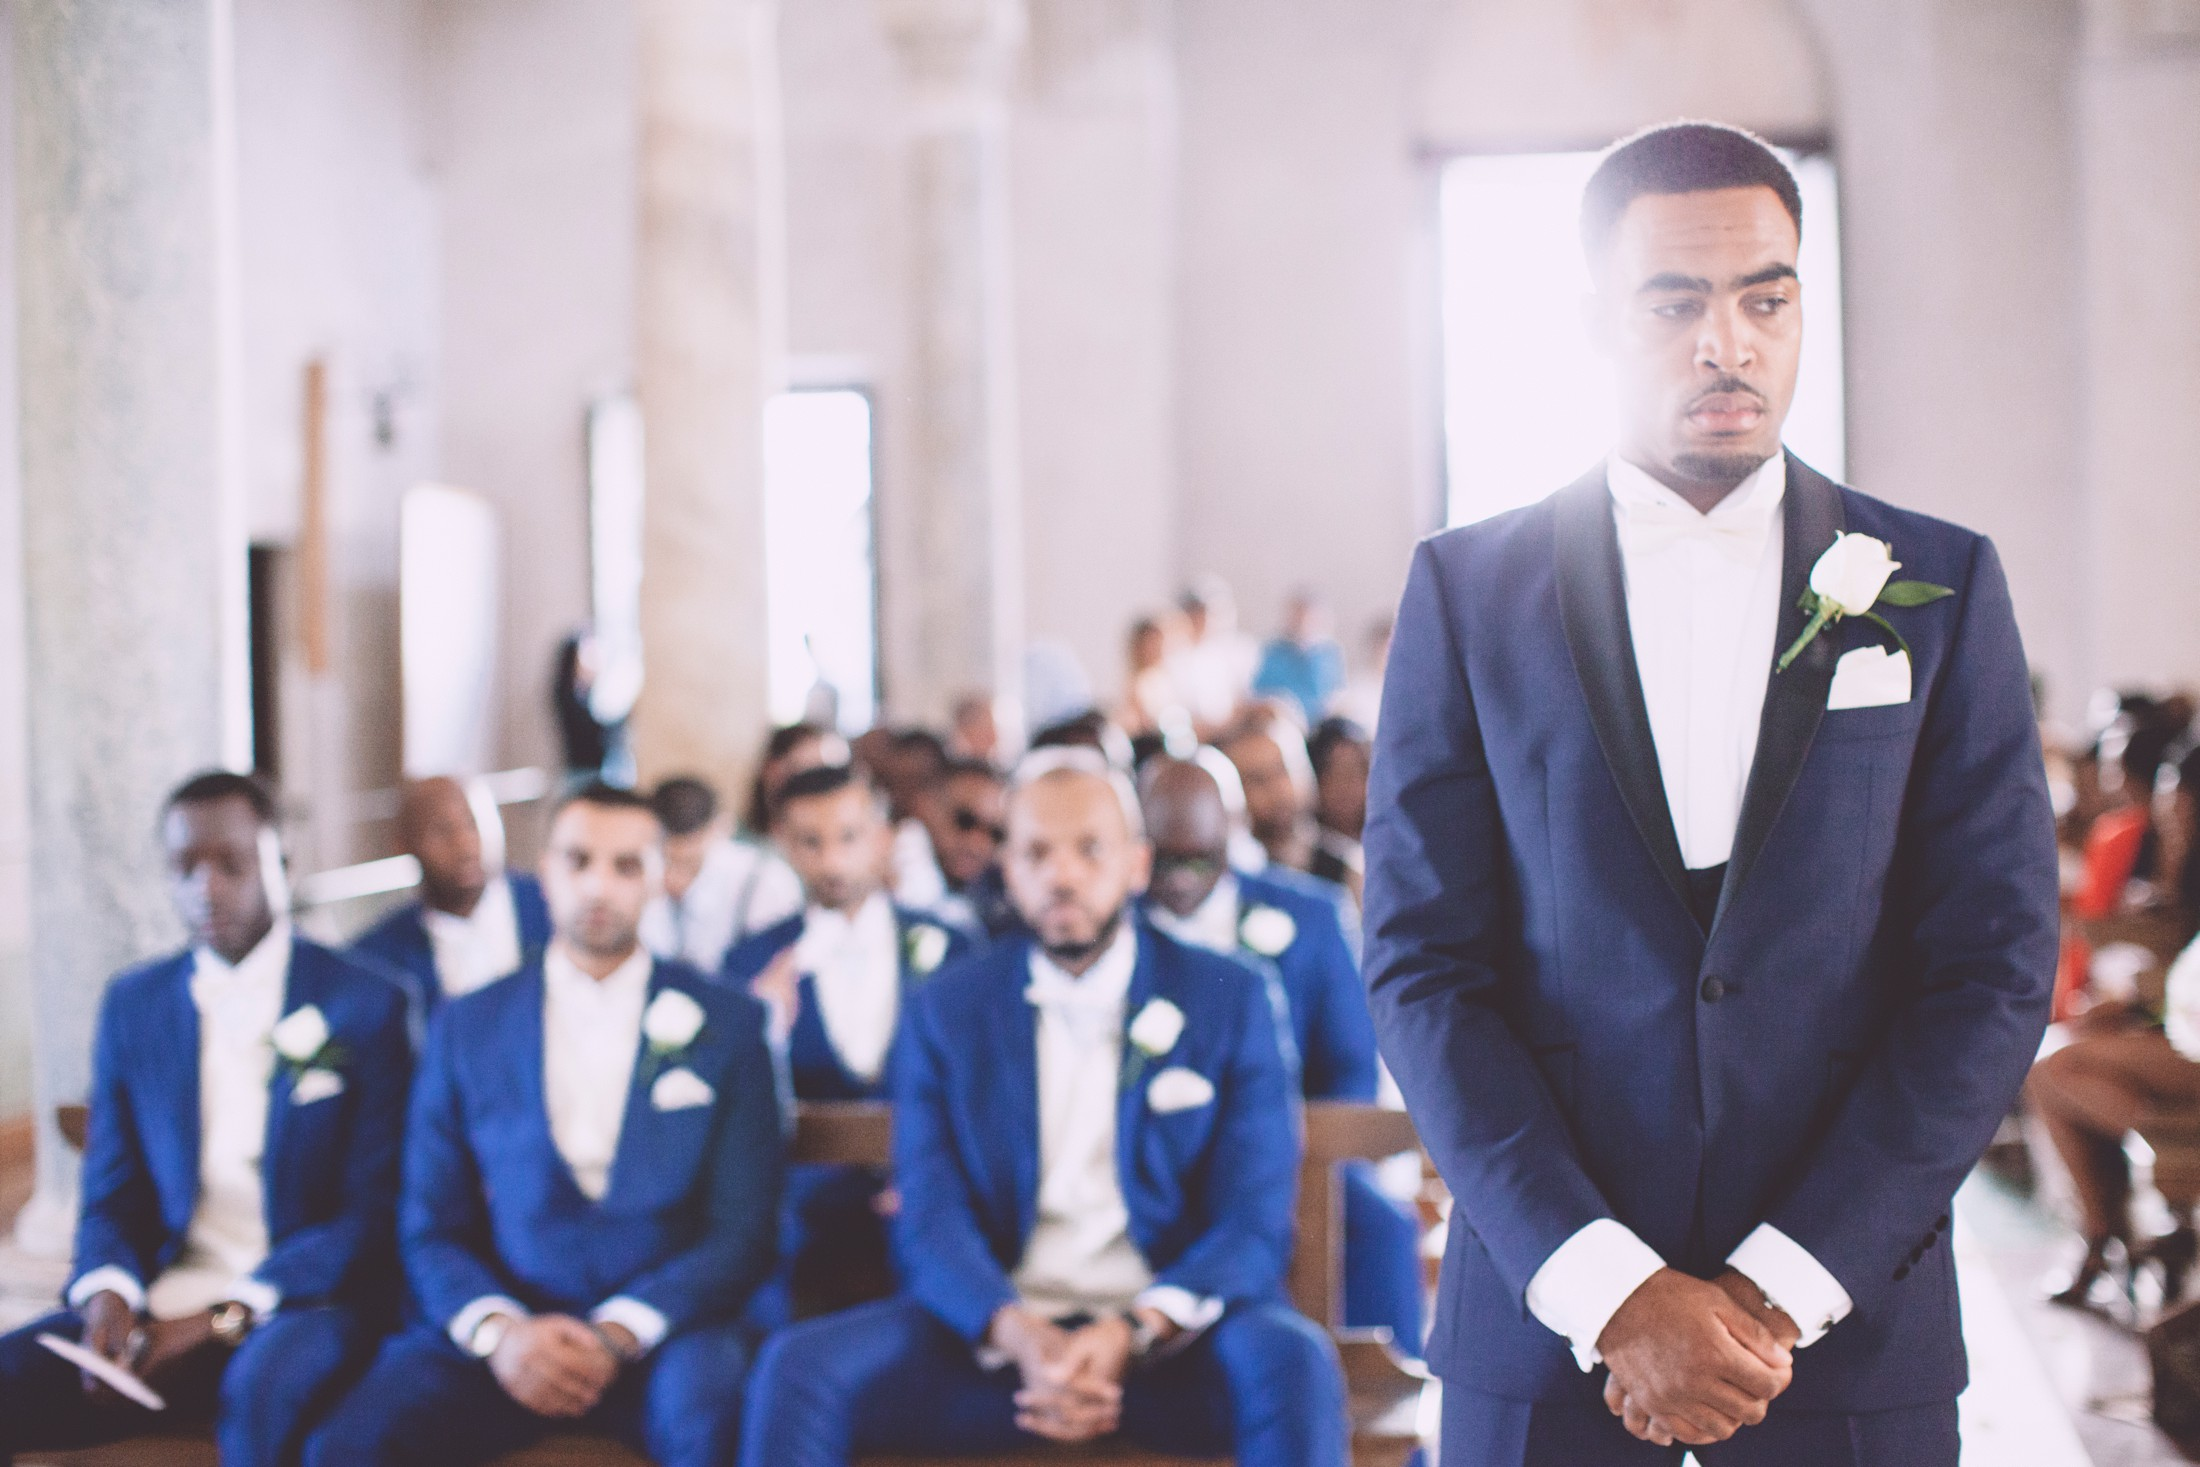 the groom waits for the bride inside the church